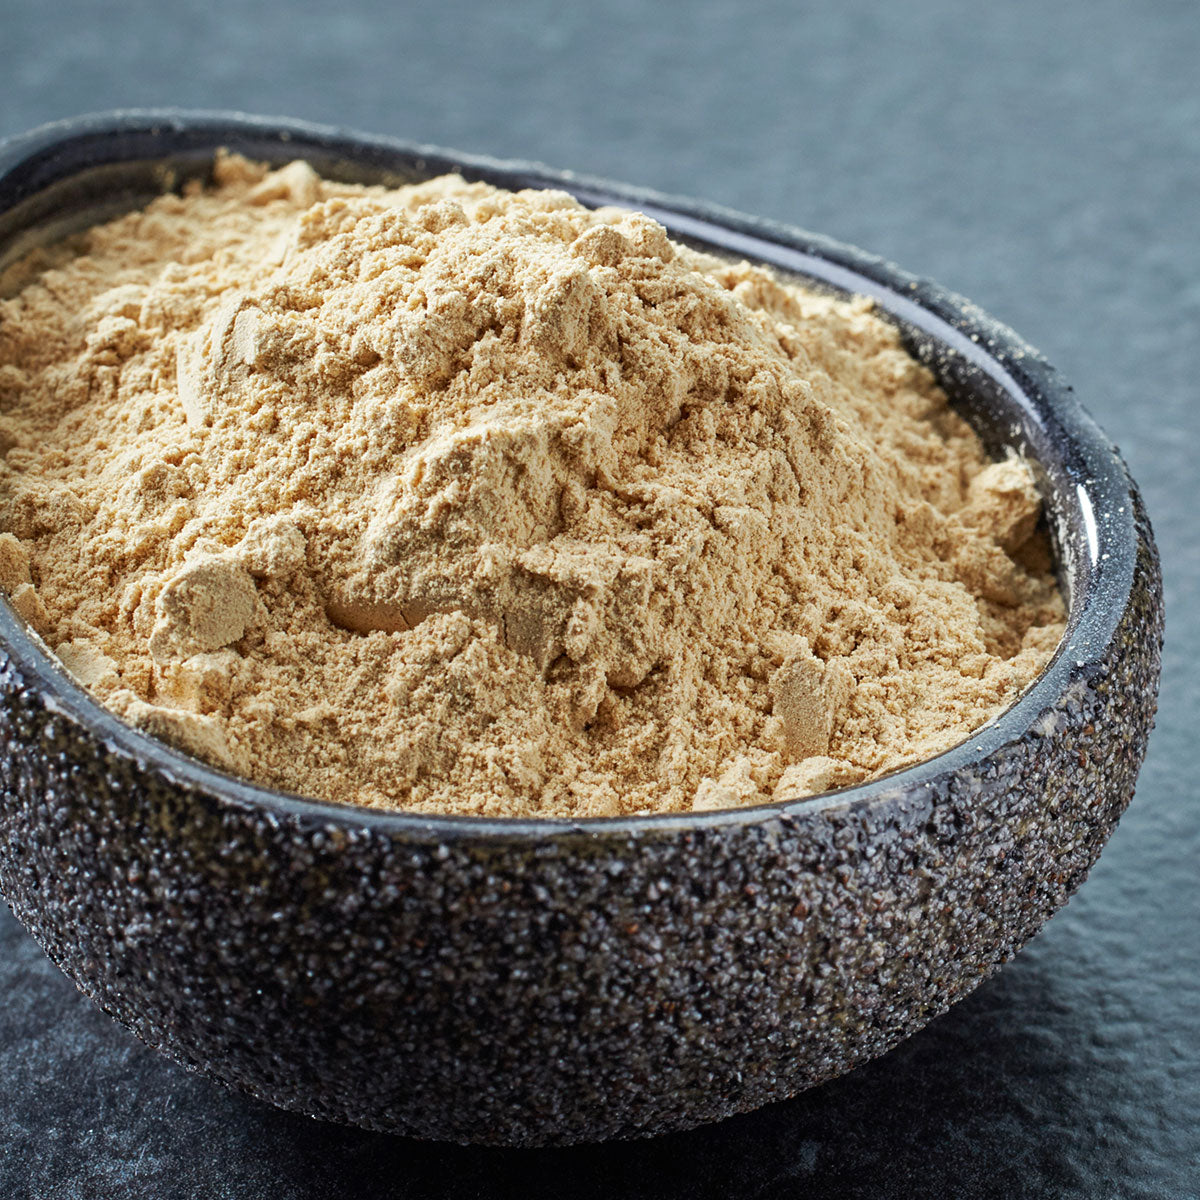 How Maca Can Help Balance Your Hormones